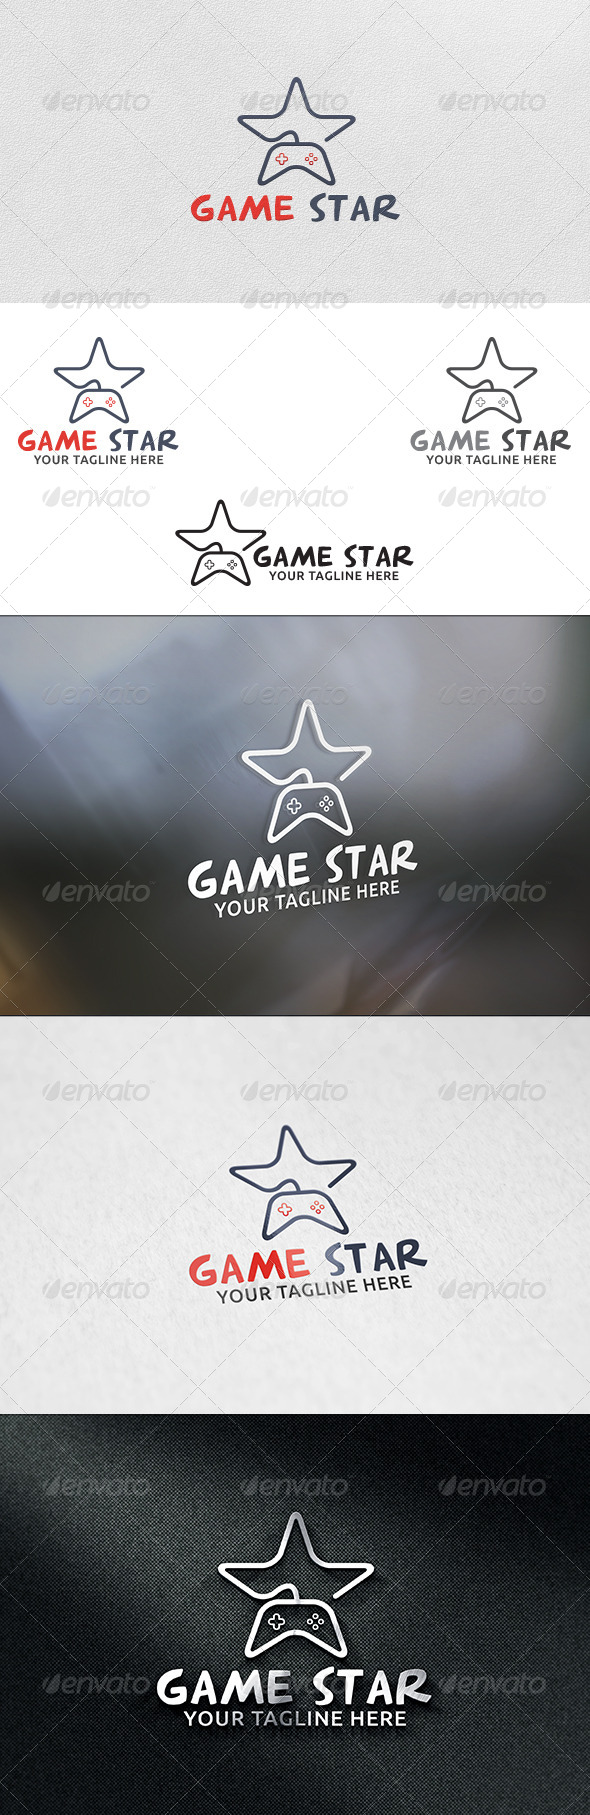 Game Star - Logo Template